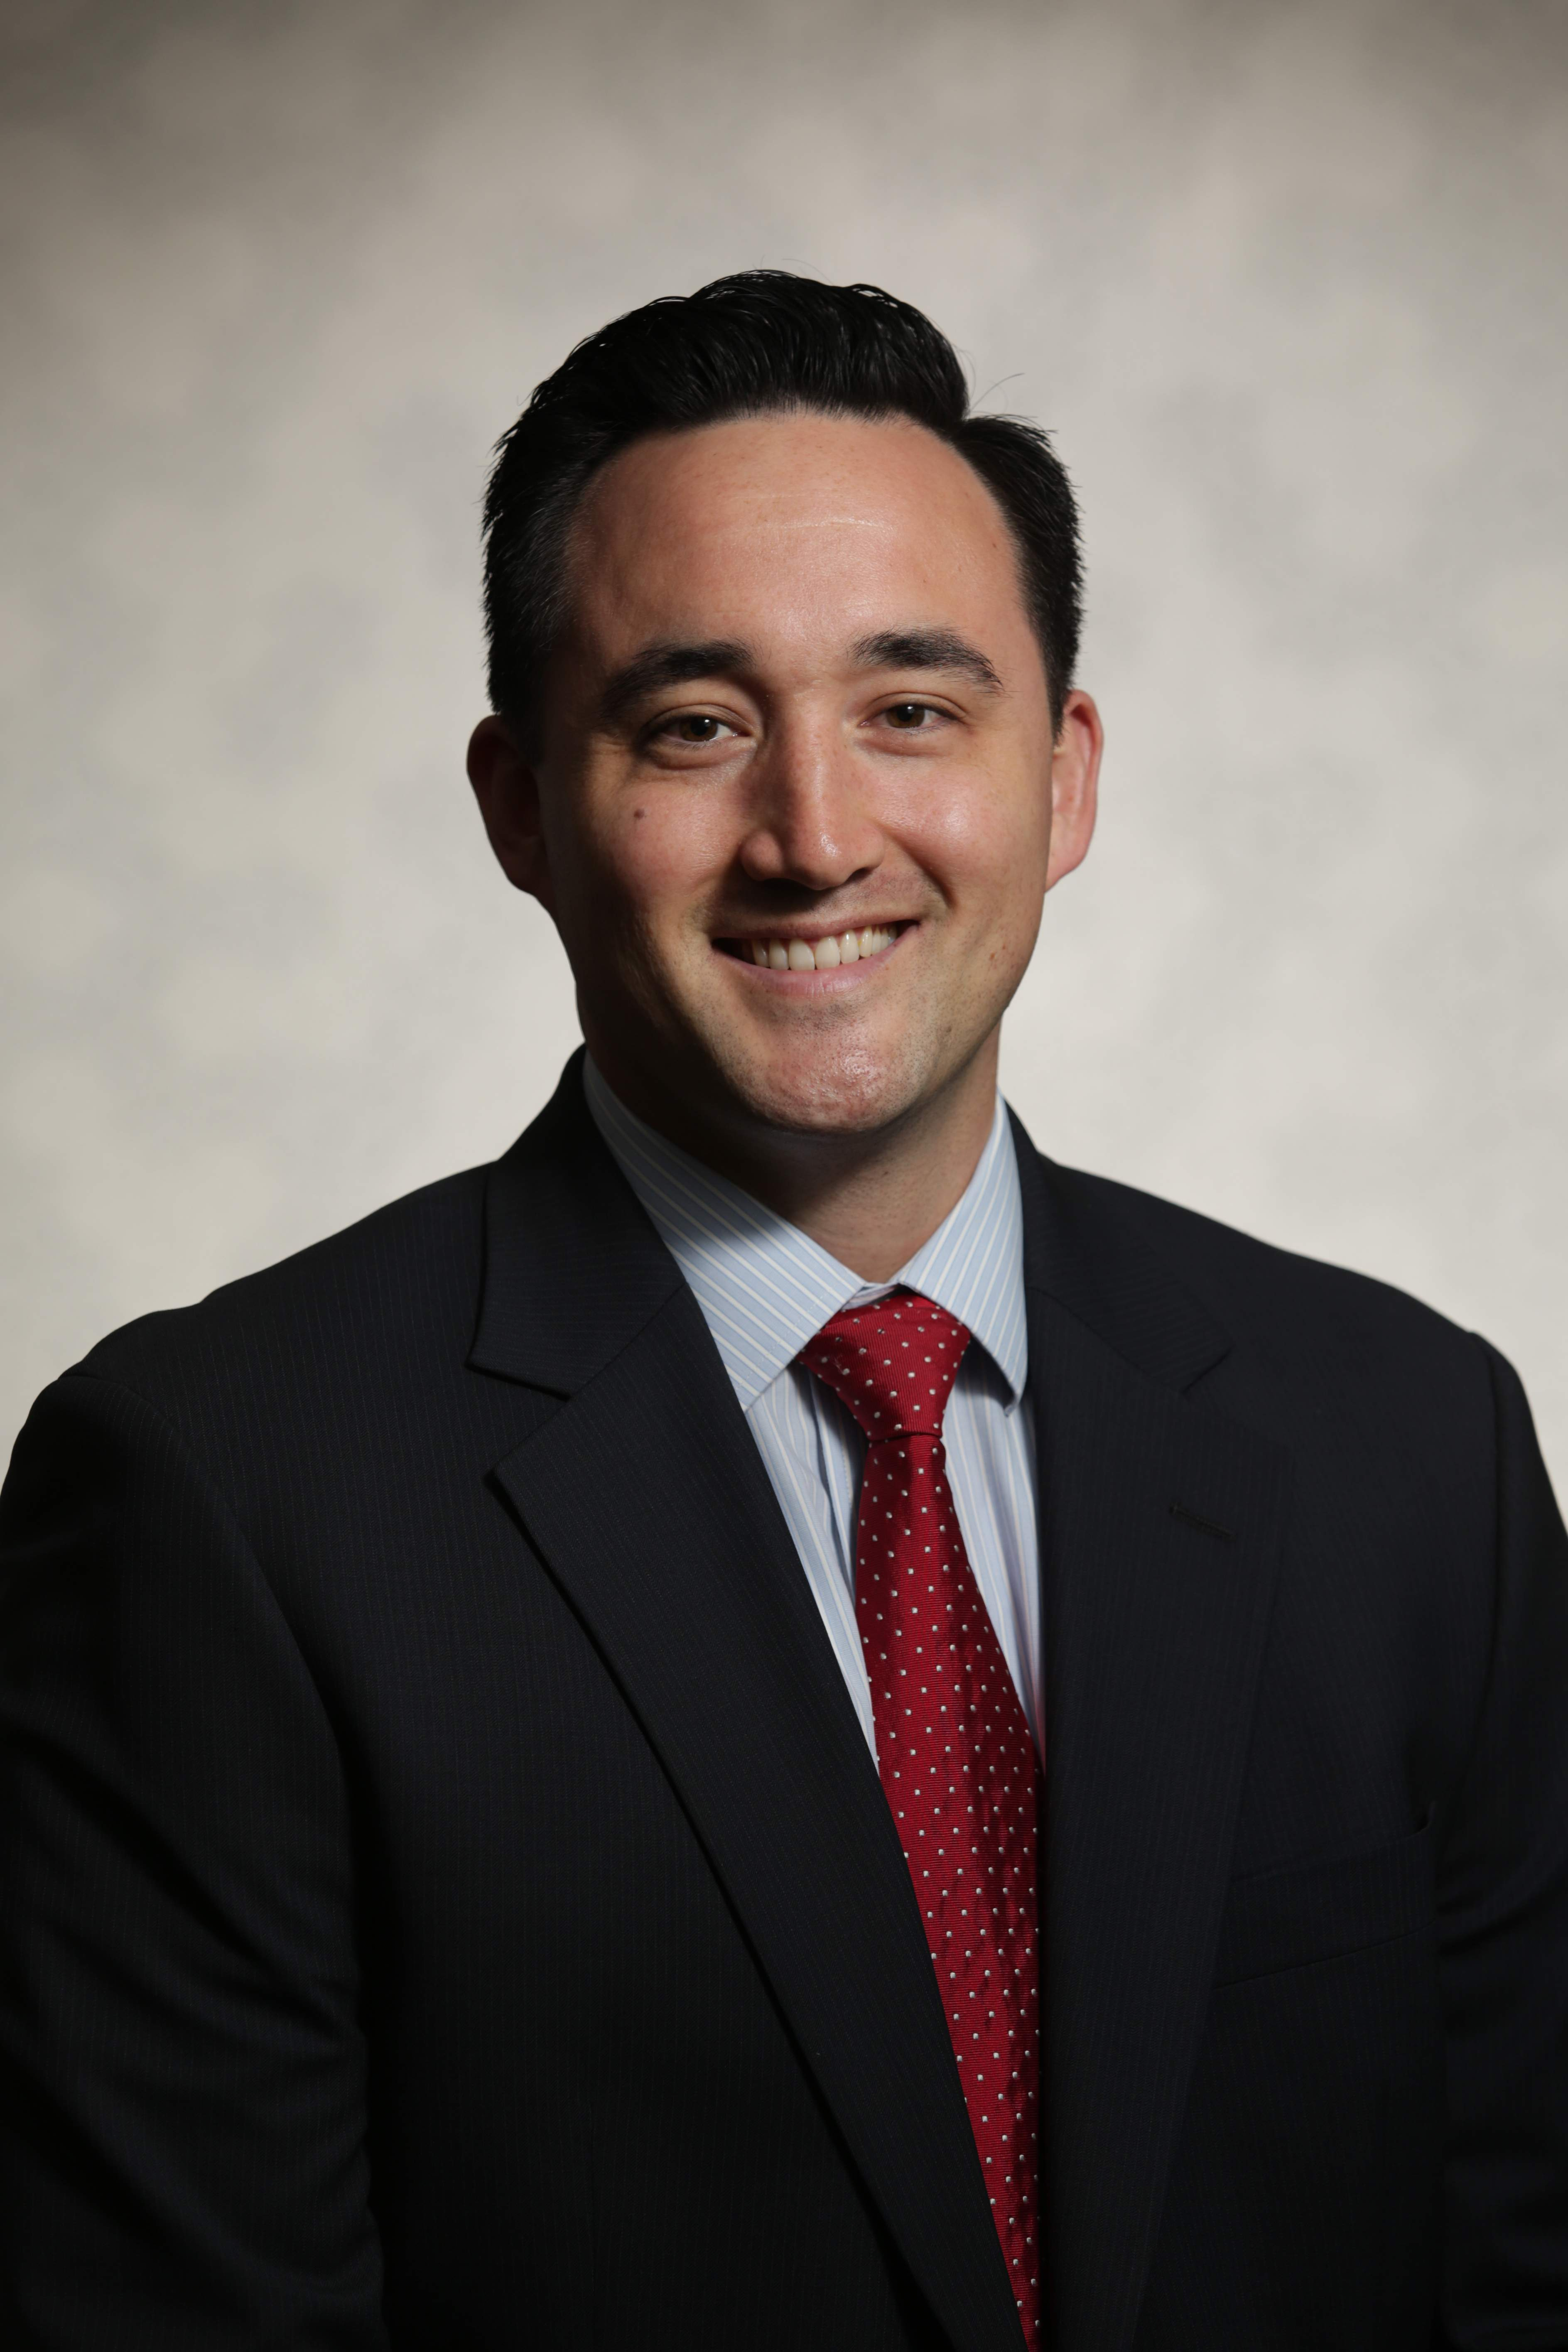 Co-founder and managing partner, Redwood Realty Advisors